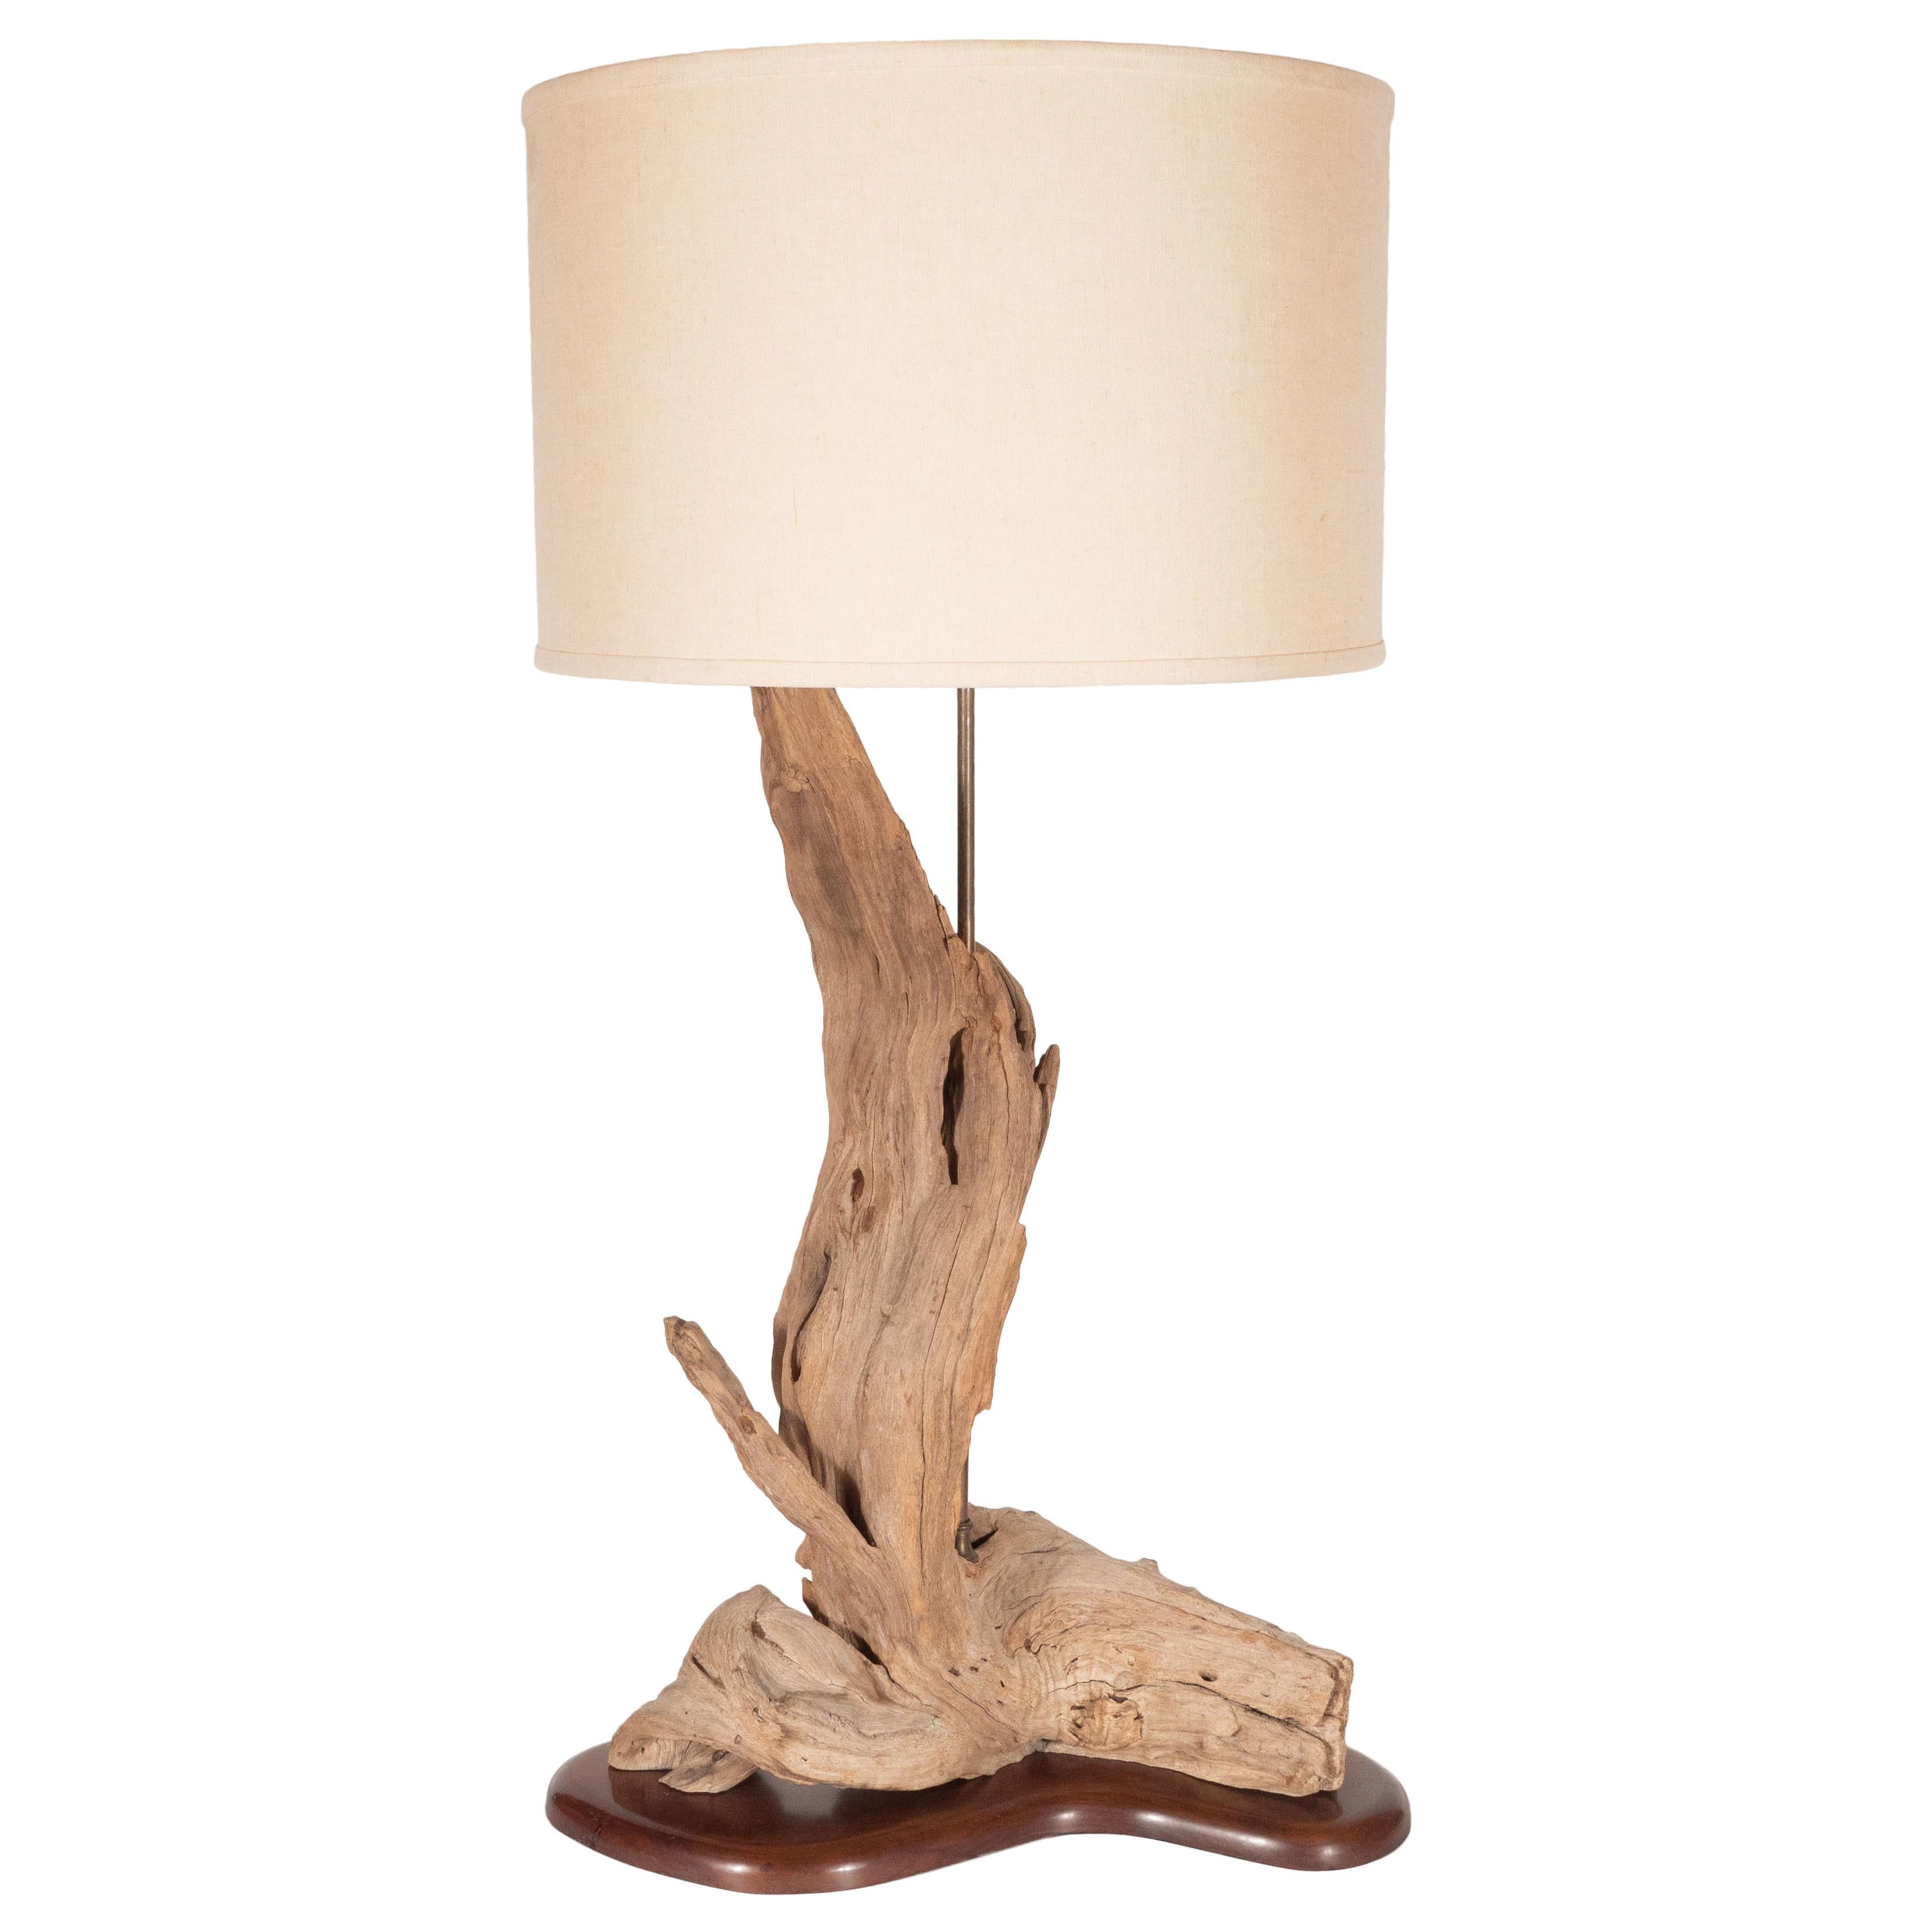 Organic Modern Sculptural Driftwood Table Lamp With Handrubbed Walnut Base  For Sale